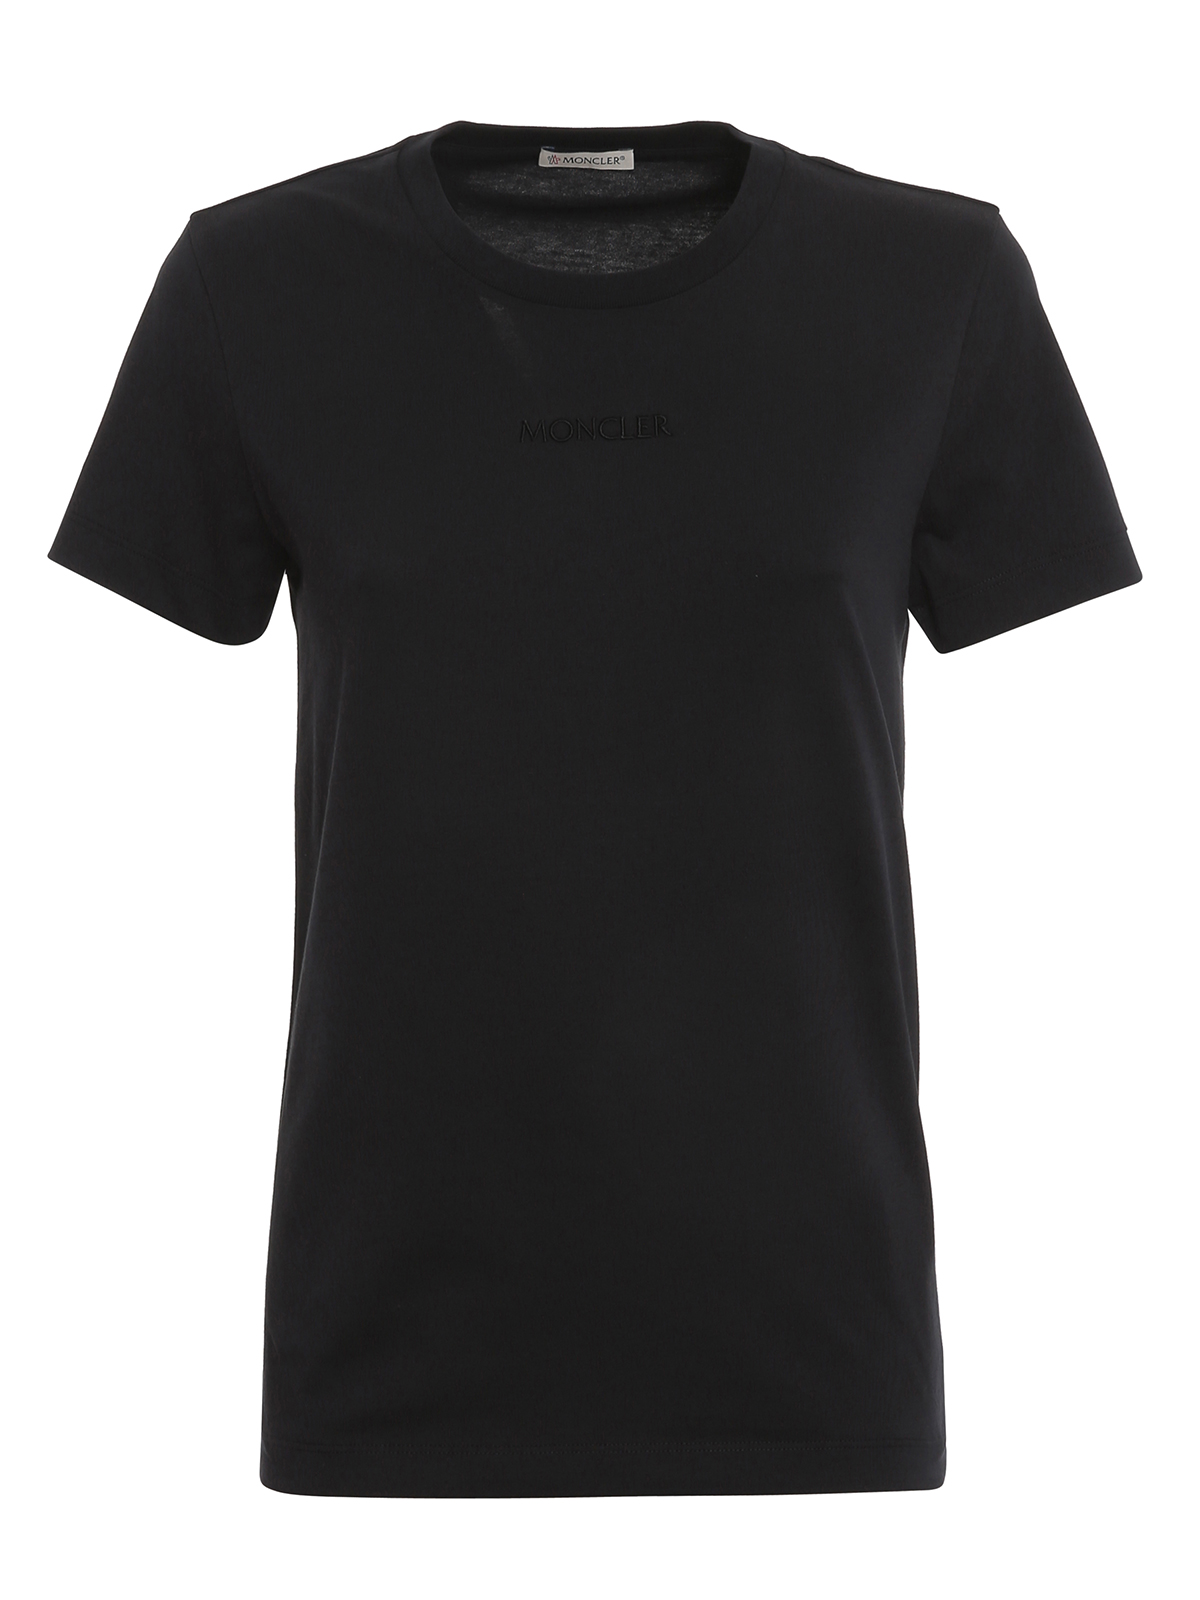 Moncler Cottons EMBROIDERED T-SHIRT